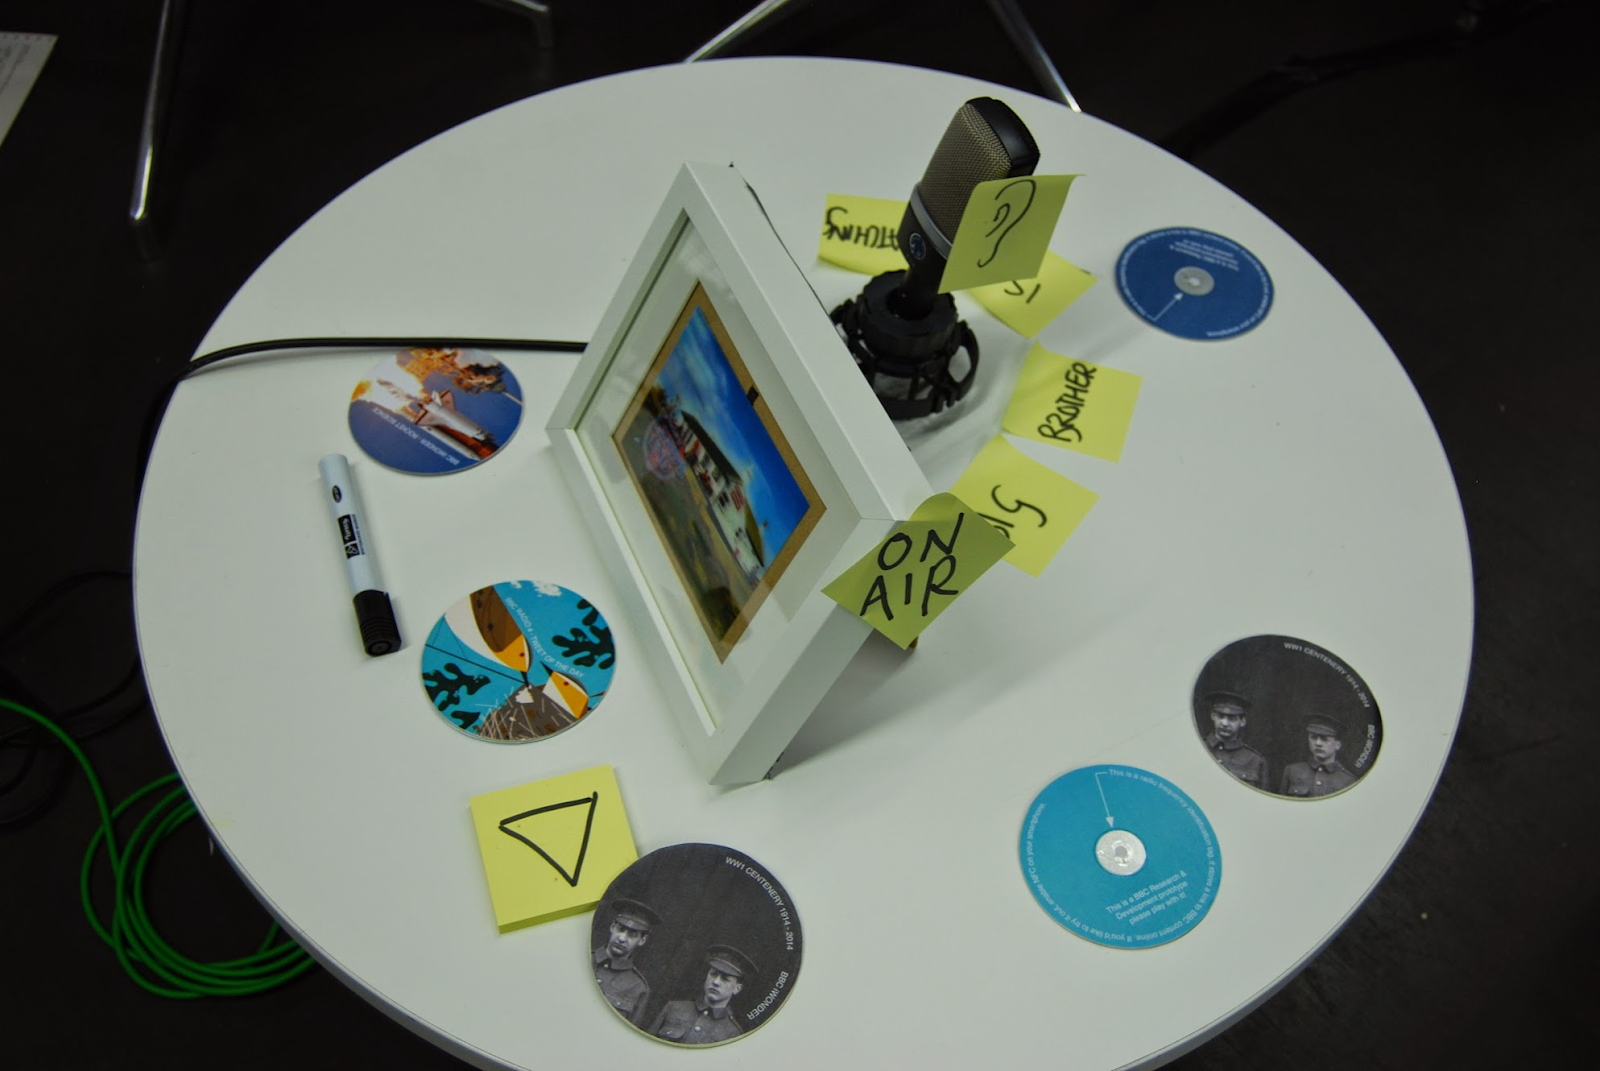 Table containing stickers, screen and microphone